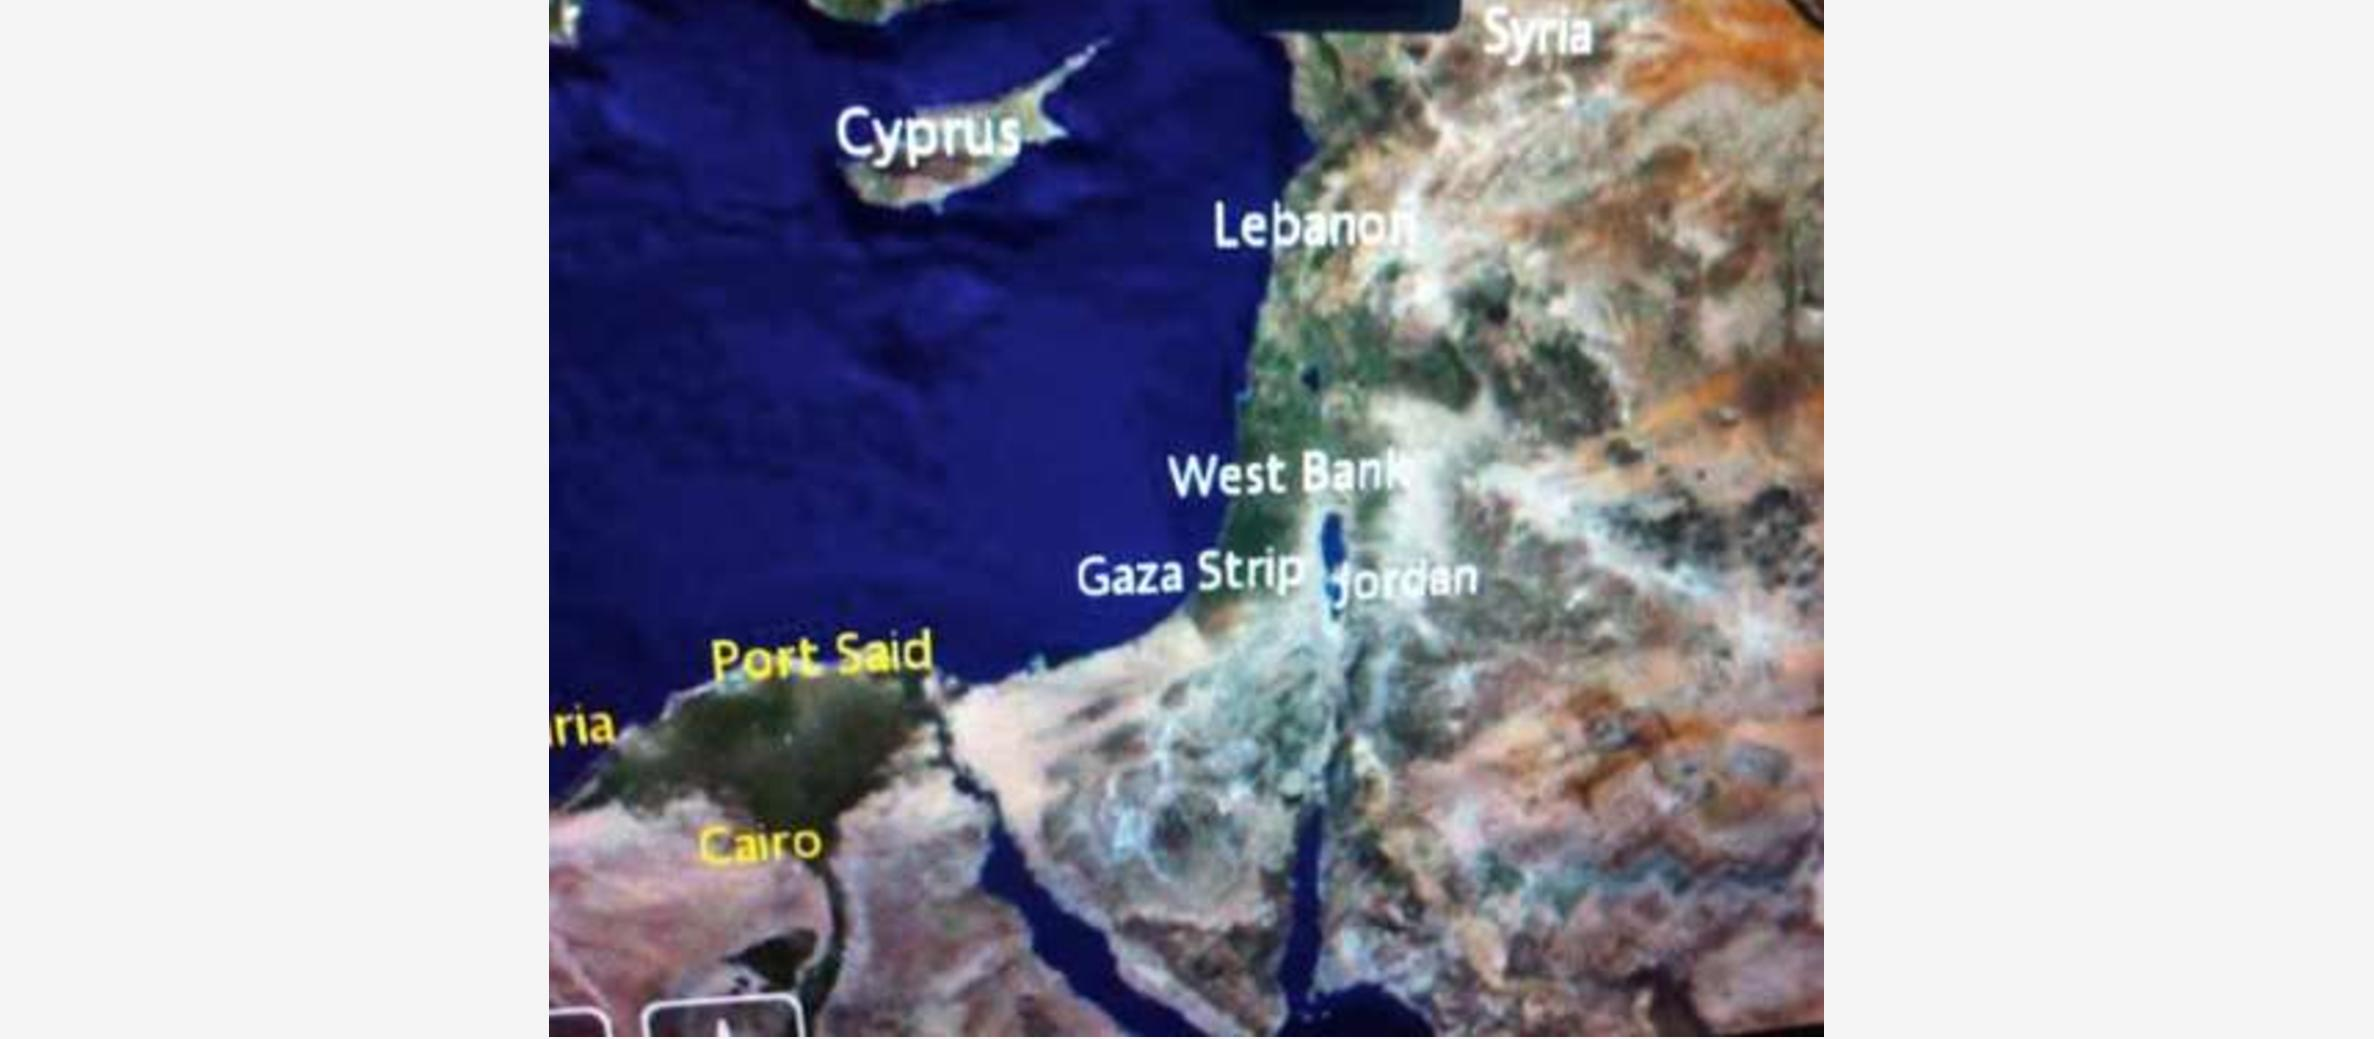 Israel now back on Air France flight maps – Airline 'deeply regrets' incident